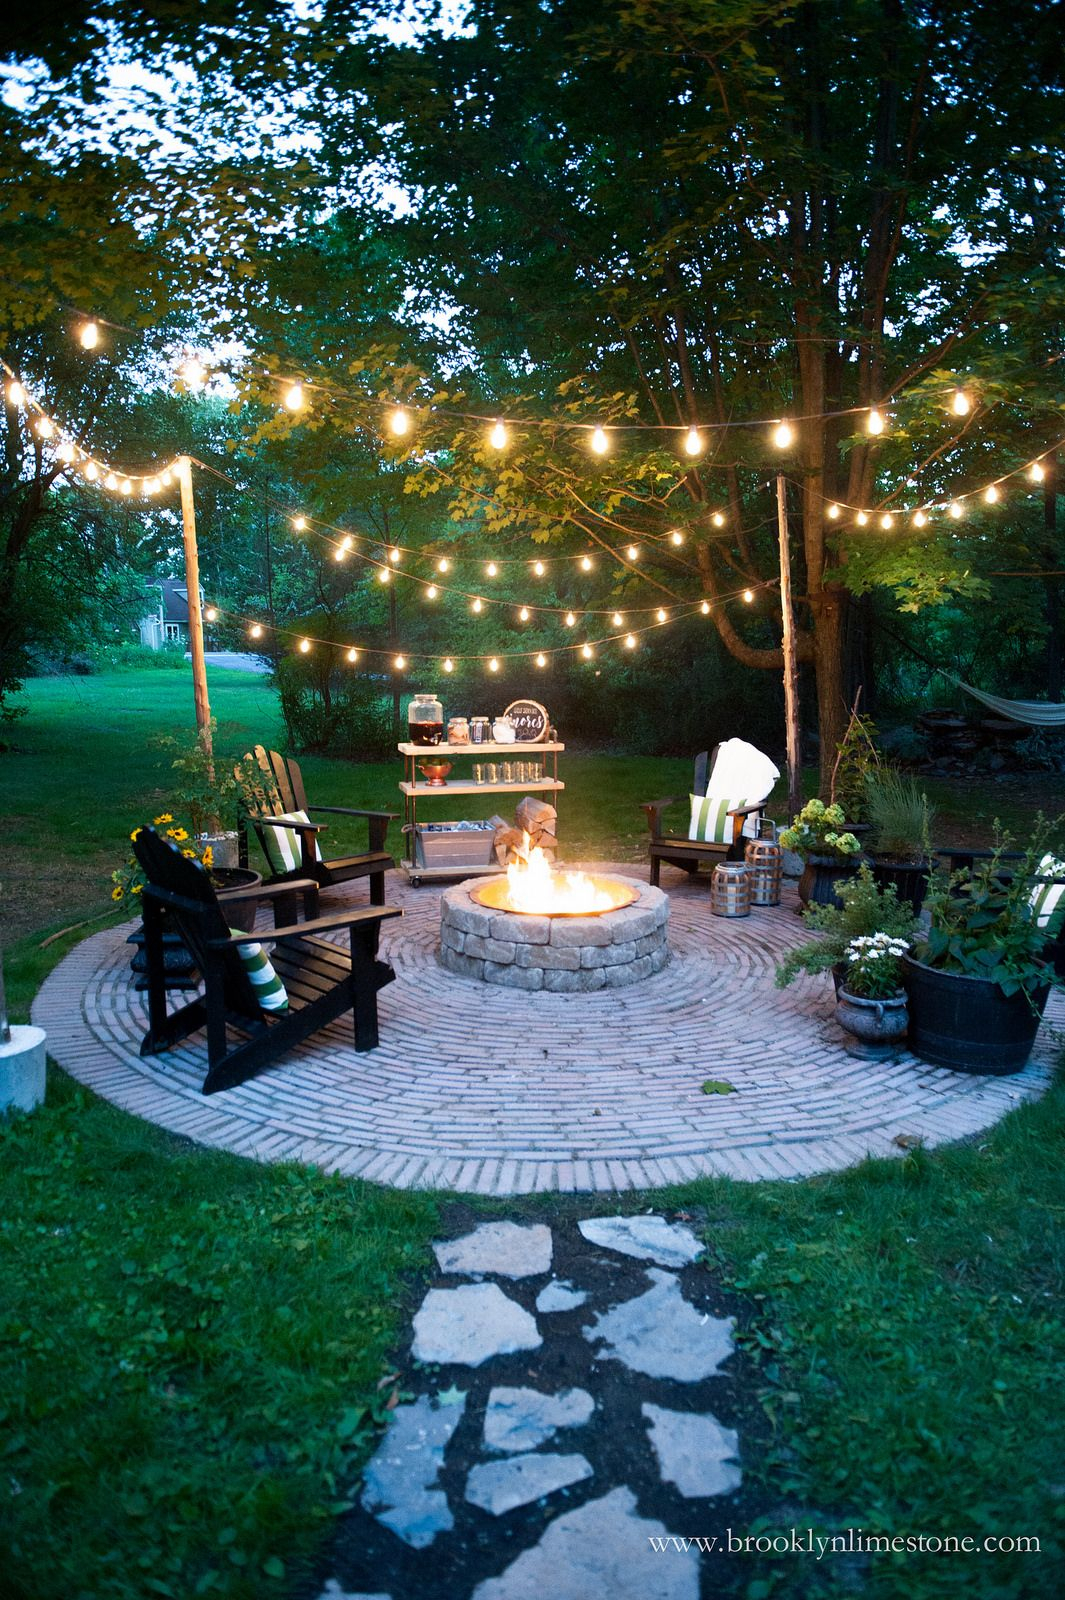 18 Fire Pit Ideas For Your Backyard Home Decor Ideas Backyard inside 14 Genius Designs of How to Improve Backyard With Fire Pit Landscaping Ideas